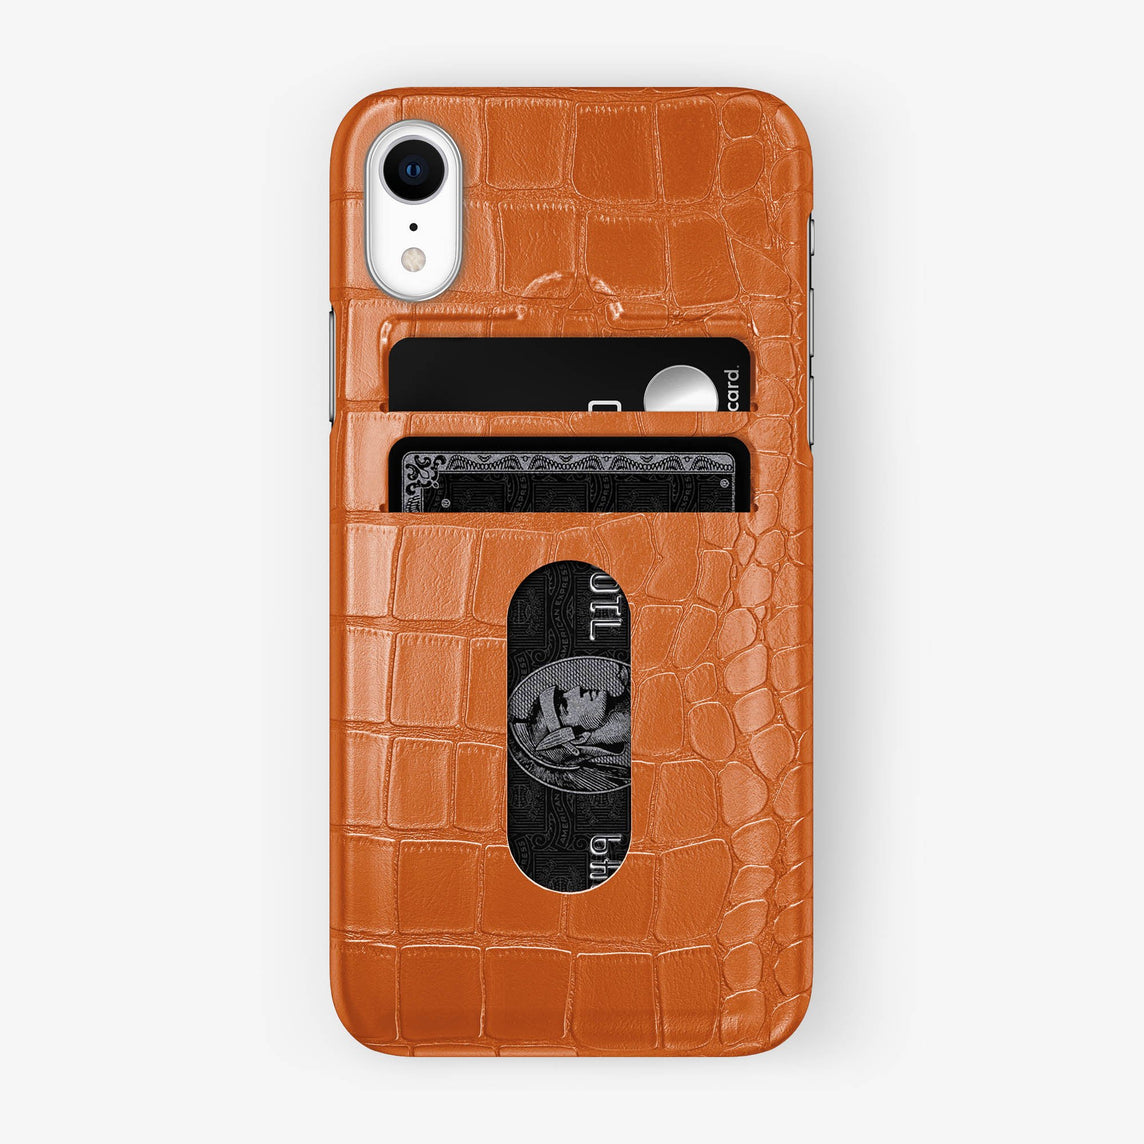 Alligator Card Holder Case iPhone Xr | Orange - Stainless Steel